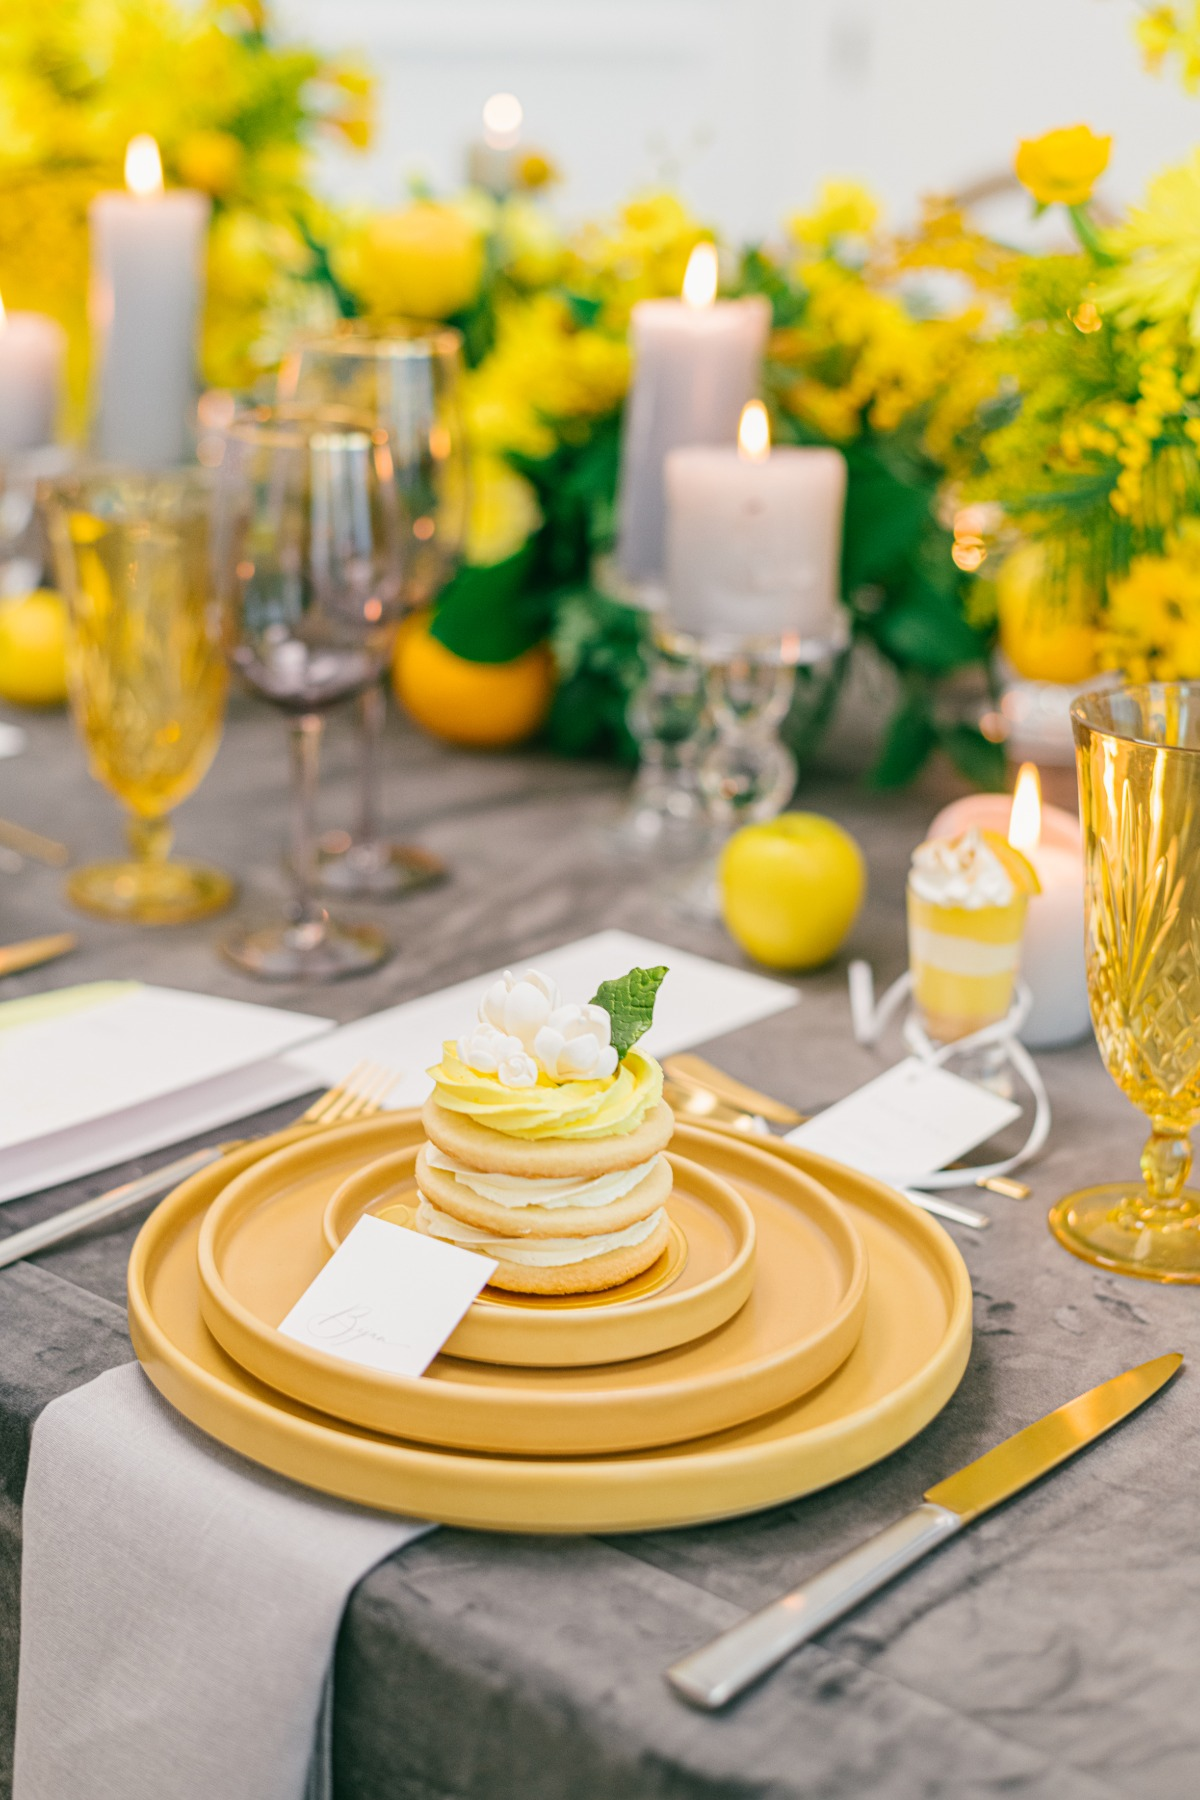 A Delicious Take On How To Incorporate Pantone's Color(s) Of The Year Into Your Wedding